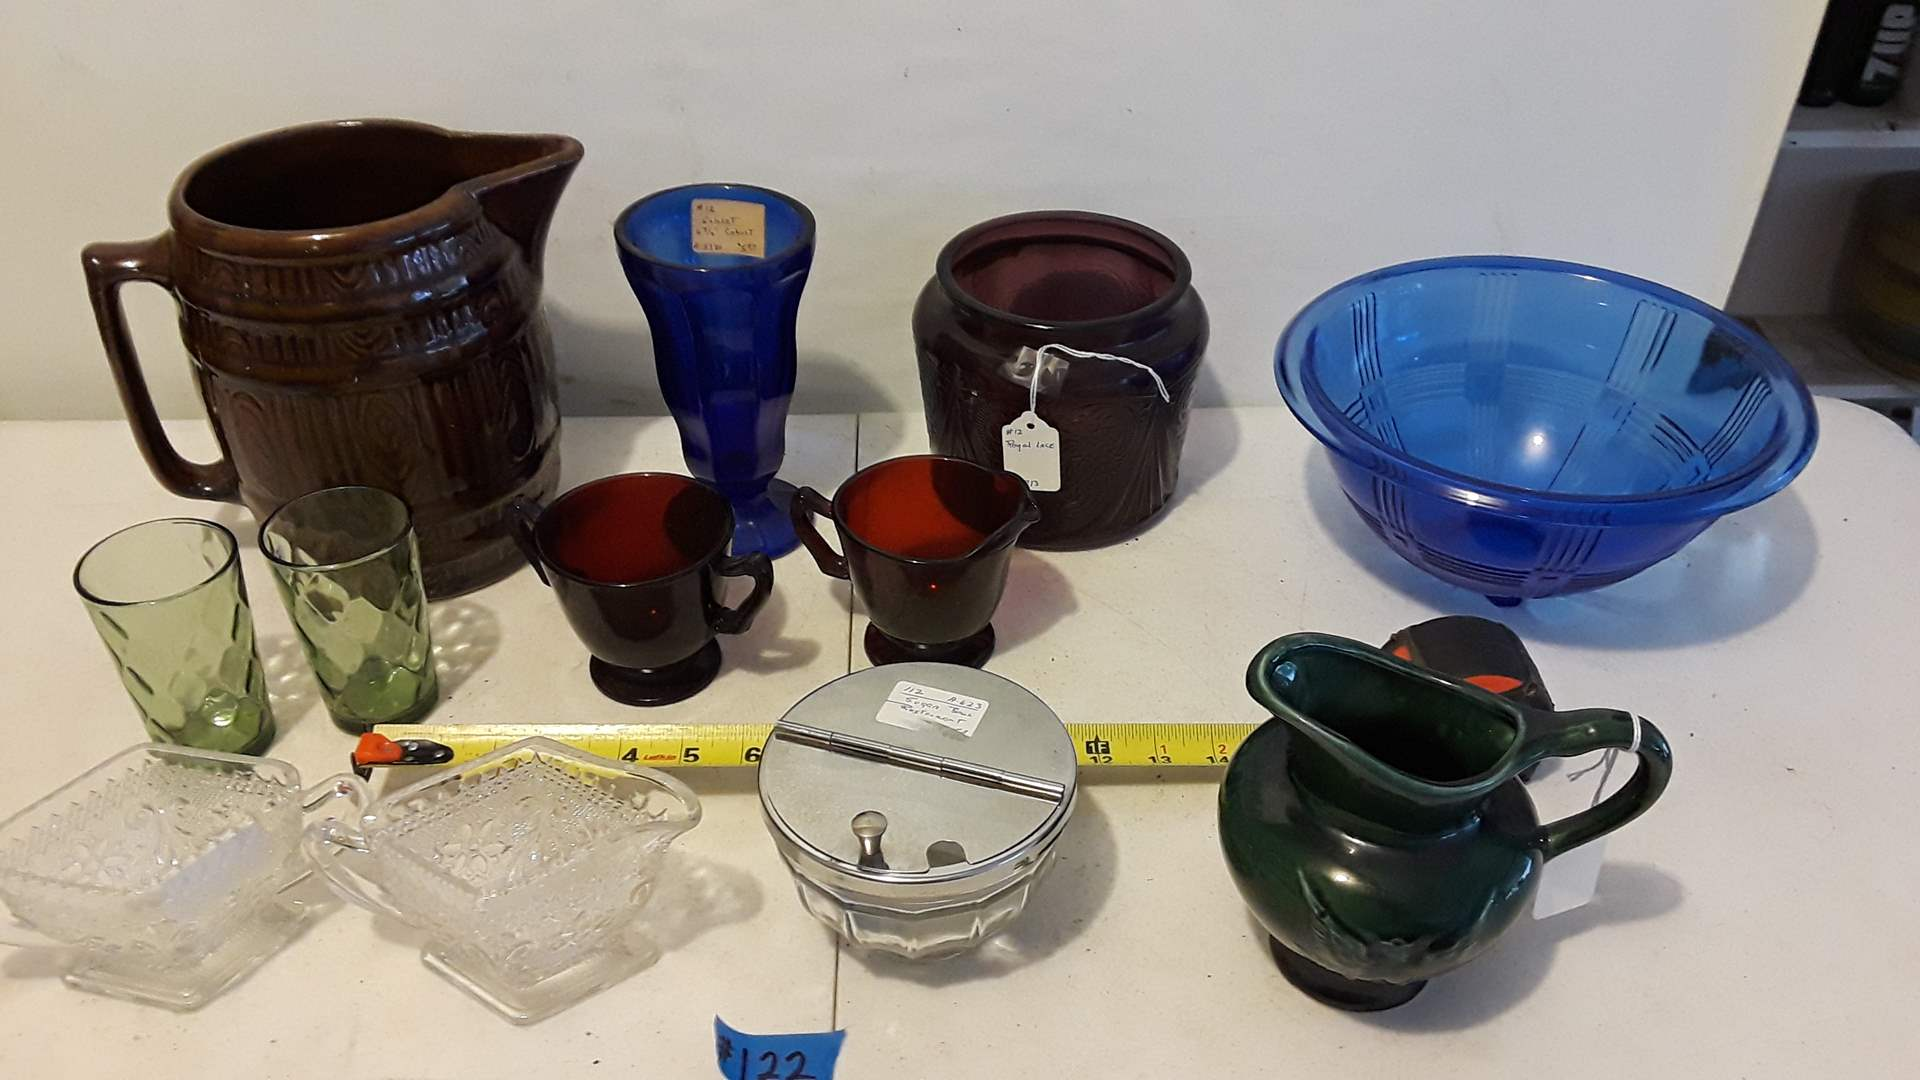 Lot # 122 COLLECTABLE GLASSWARE AND POTTERY, HEAVY BROWN STONEWARE PITCHER, HULL EAGLE, ANTIQUE BLUE BOWL , CREAMER  AND SUGAR